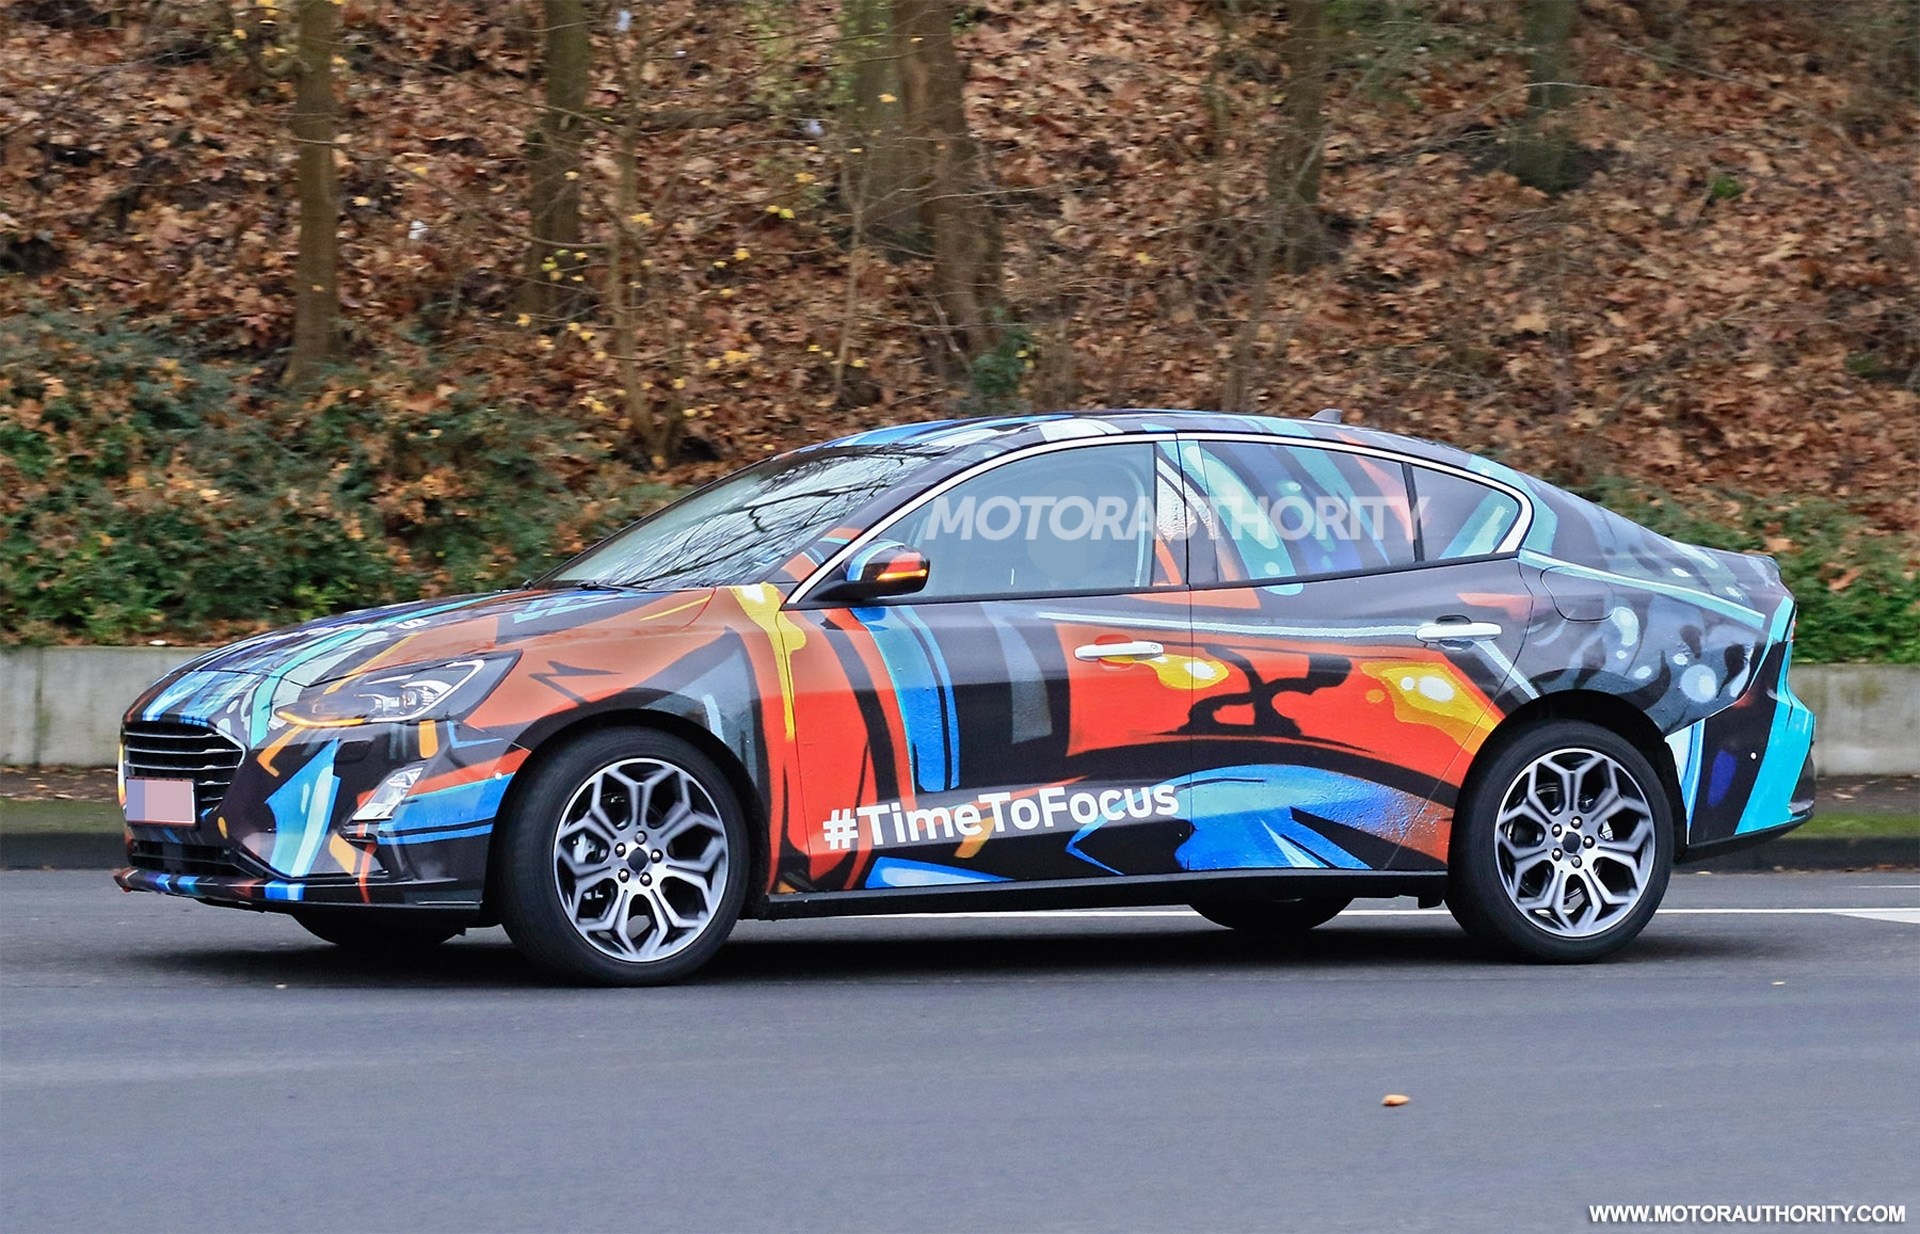 17 New Spy Shots Ford Fusion New Concept